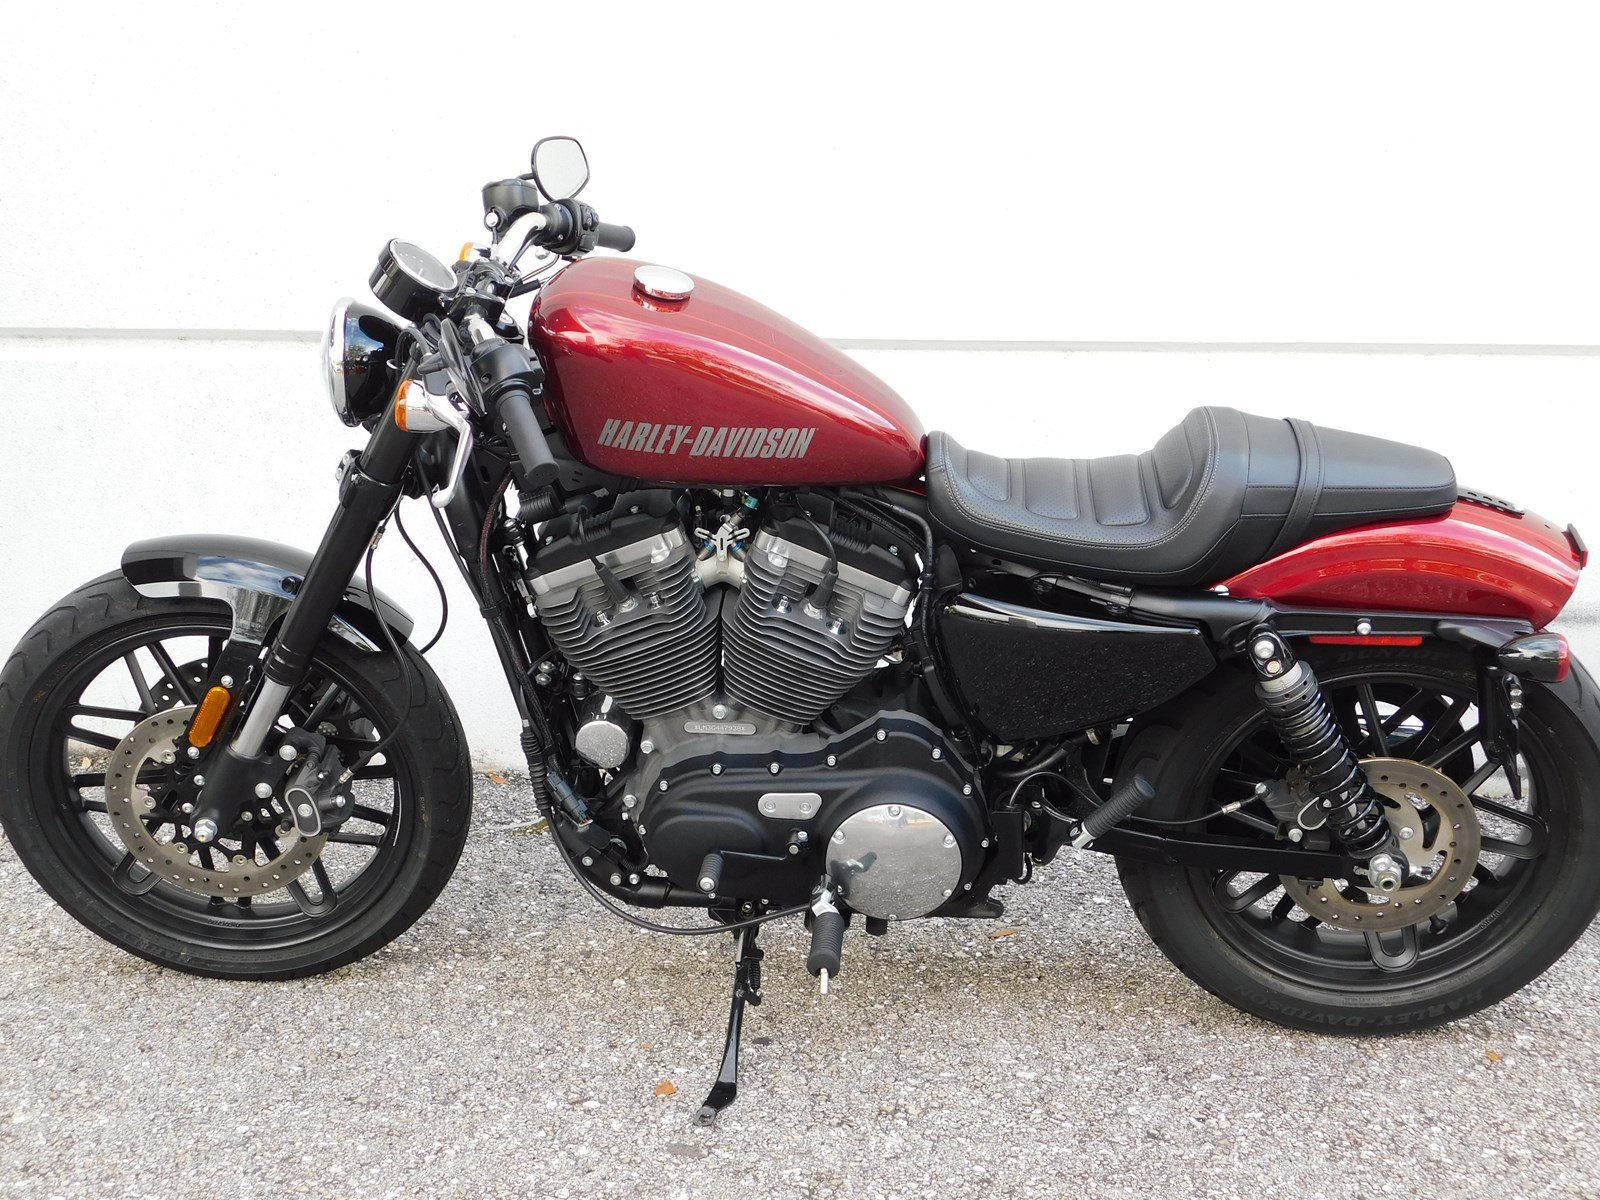 pre owned 2016 harley davidson sportster roadster xl1200cx sportster in west palm beach u447938. Black Bedroom Furniture Sets. Home Design Ideas